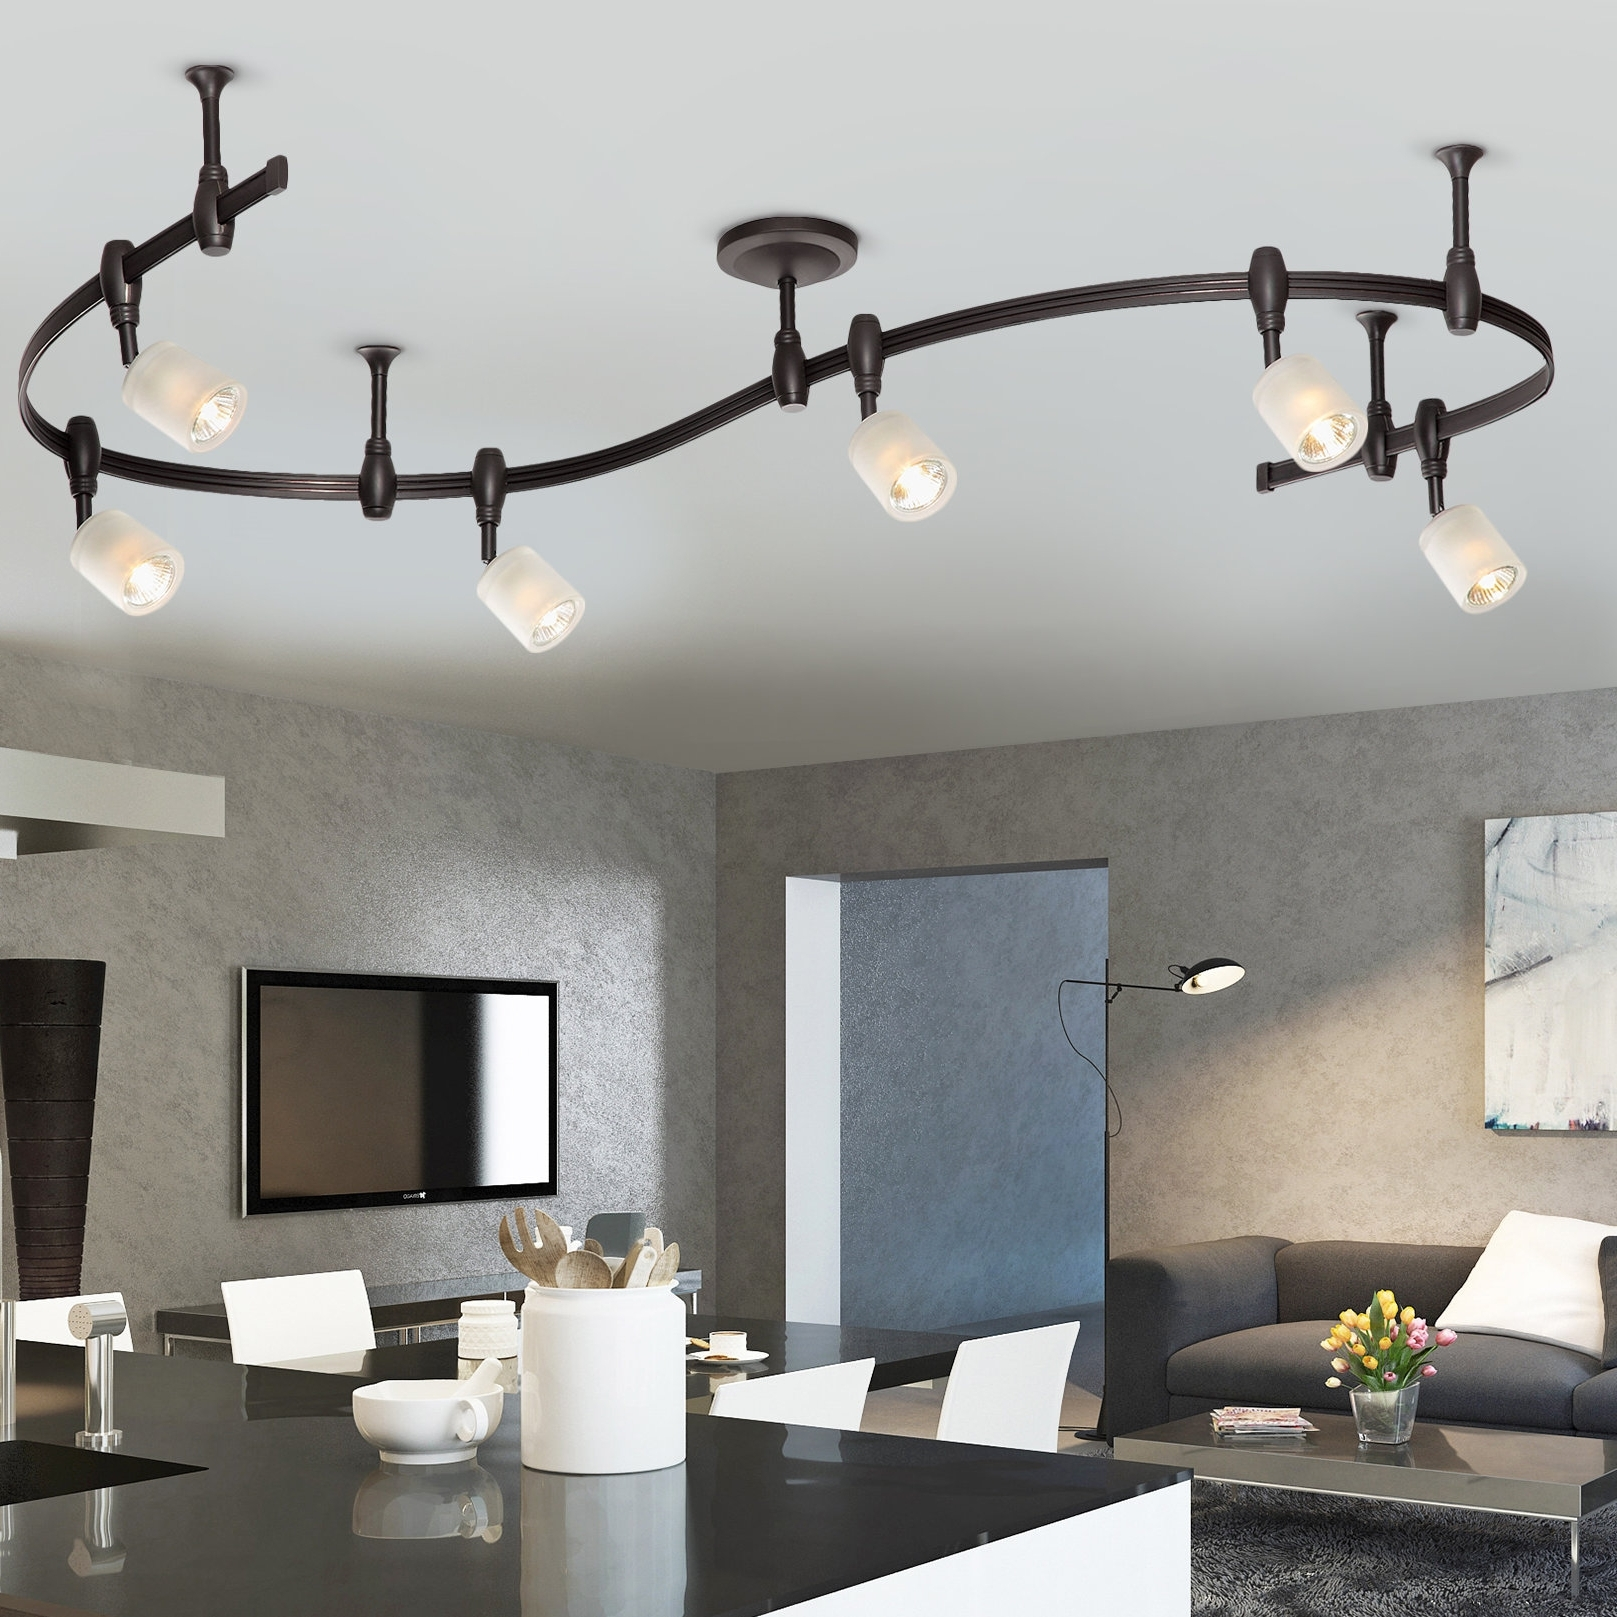 Wayfair Pertaining To Contemporary Outdoor String Lights At Wayfair (View 16 of 20)